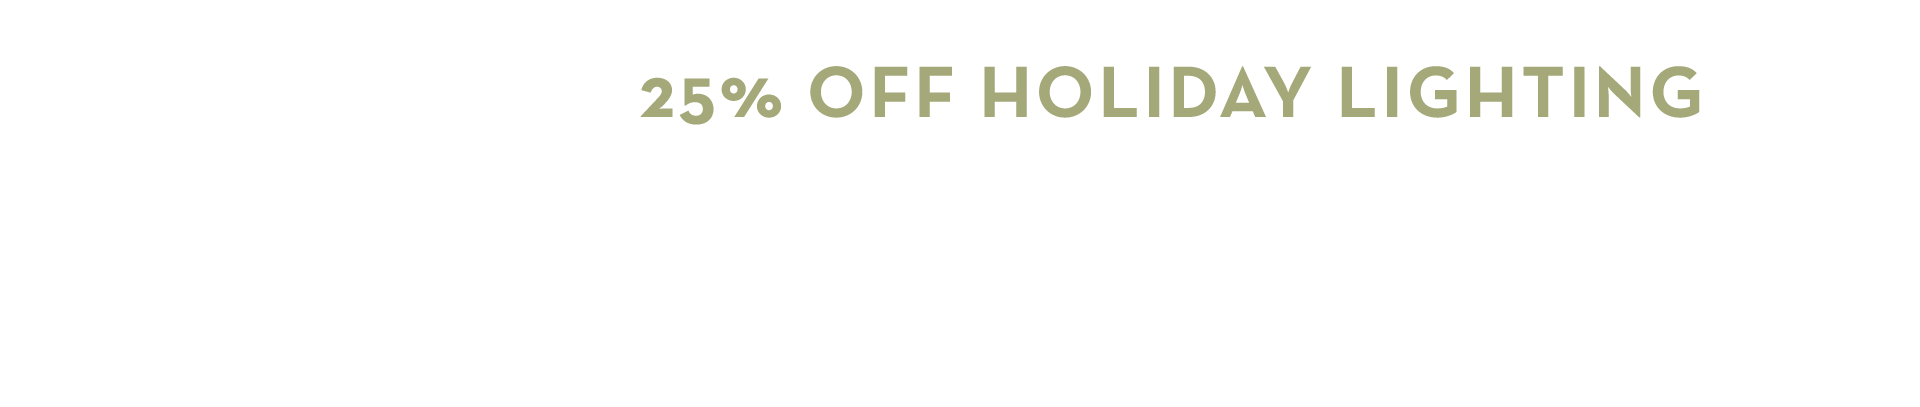 25% off holiday lighting